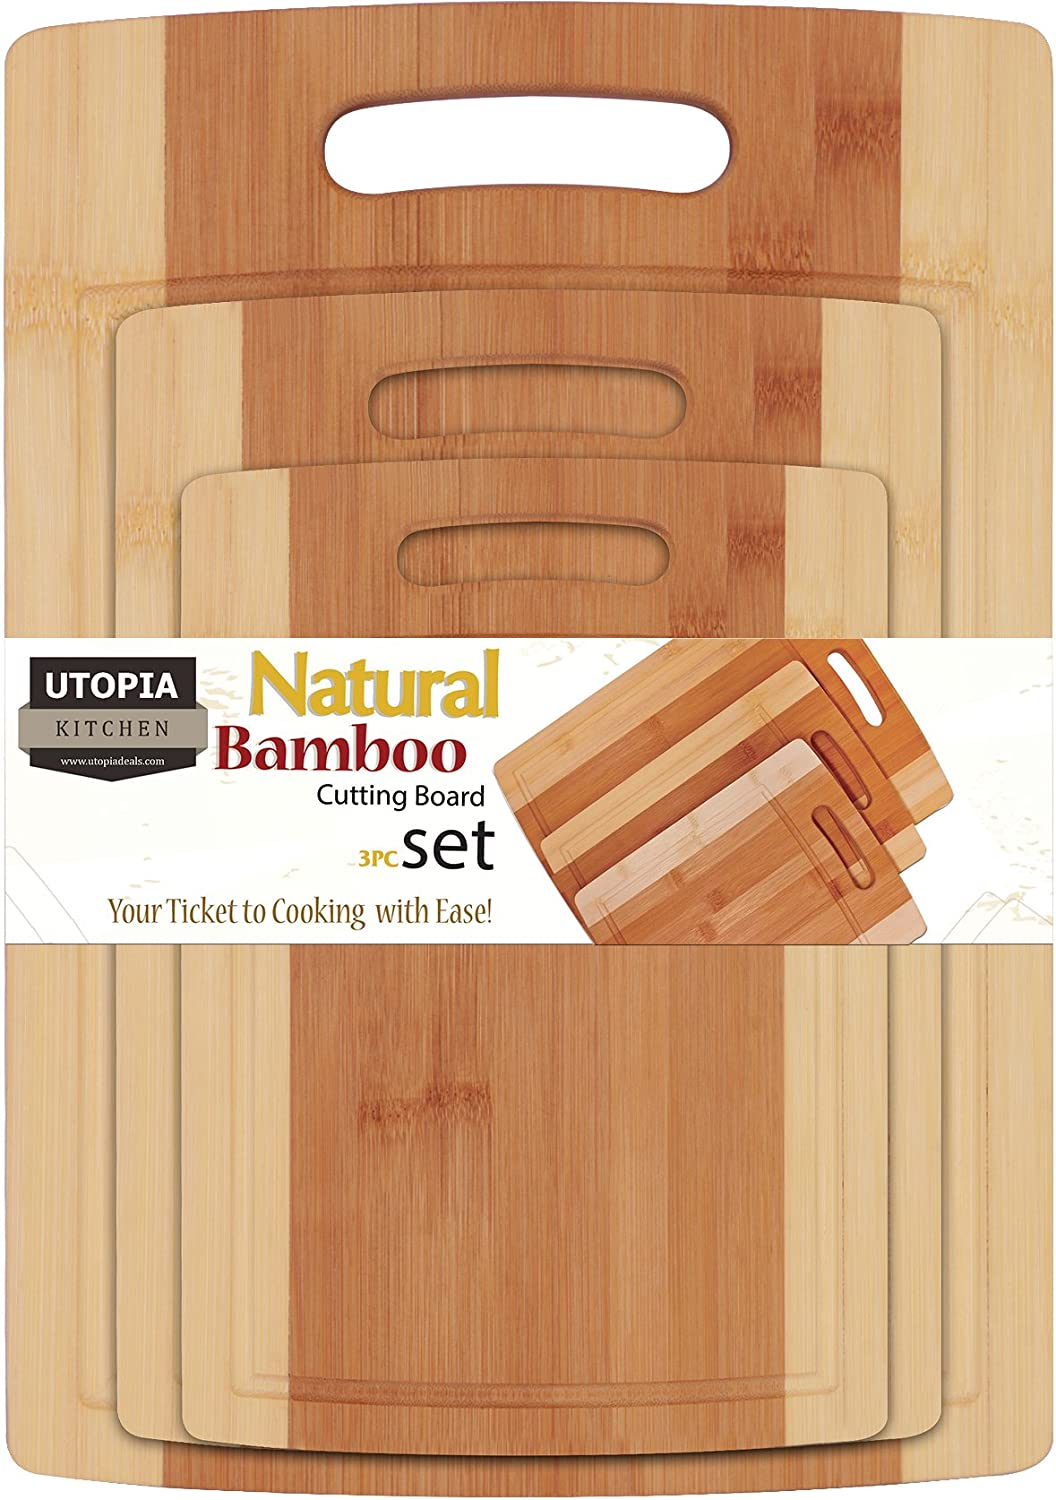 Utopia Kitchen Bamboo Cutting Board 3 Piece Set - Extra Durable - Better Than Ordinary Wood Cutting Boards - Large, Medium and Small Bamboo Cutting Boards for Bread, Vegetables, Chicken UK0209